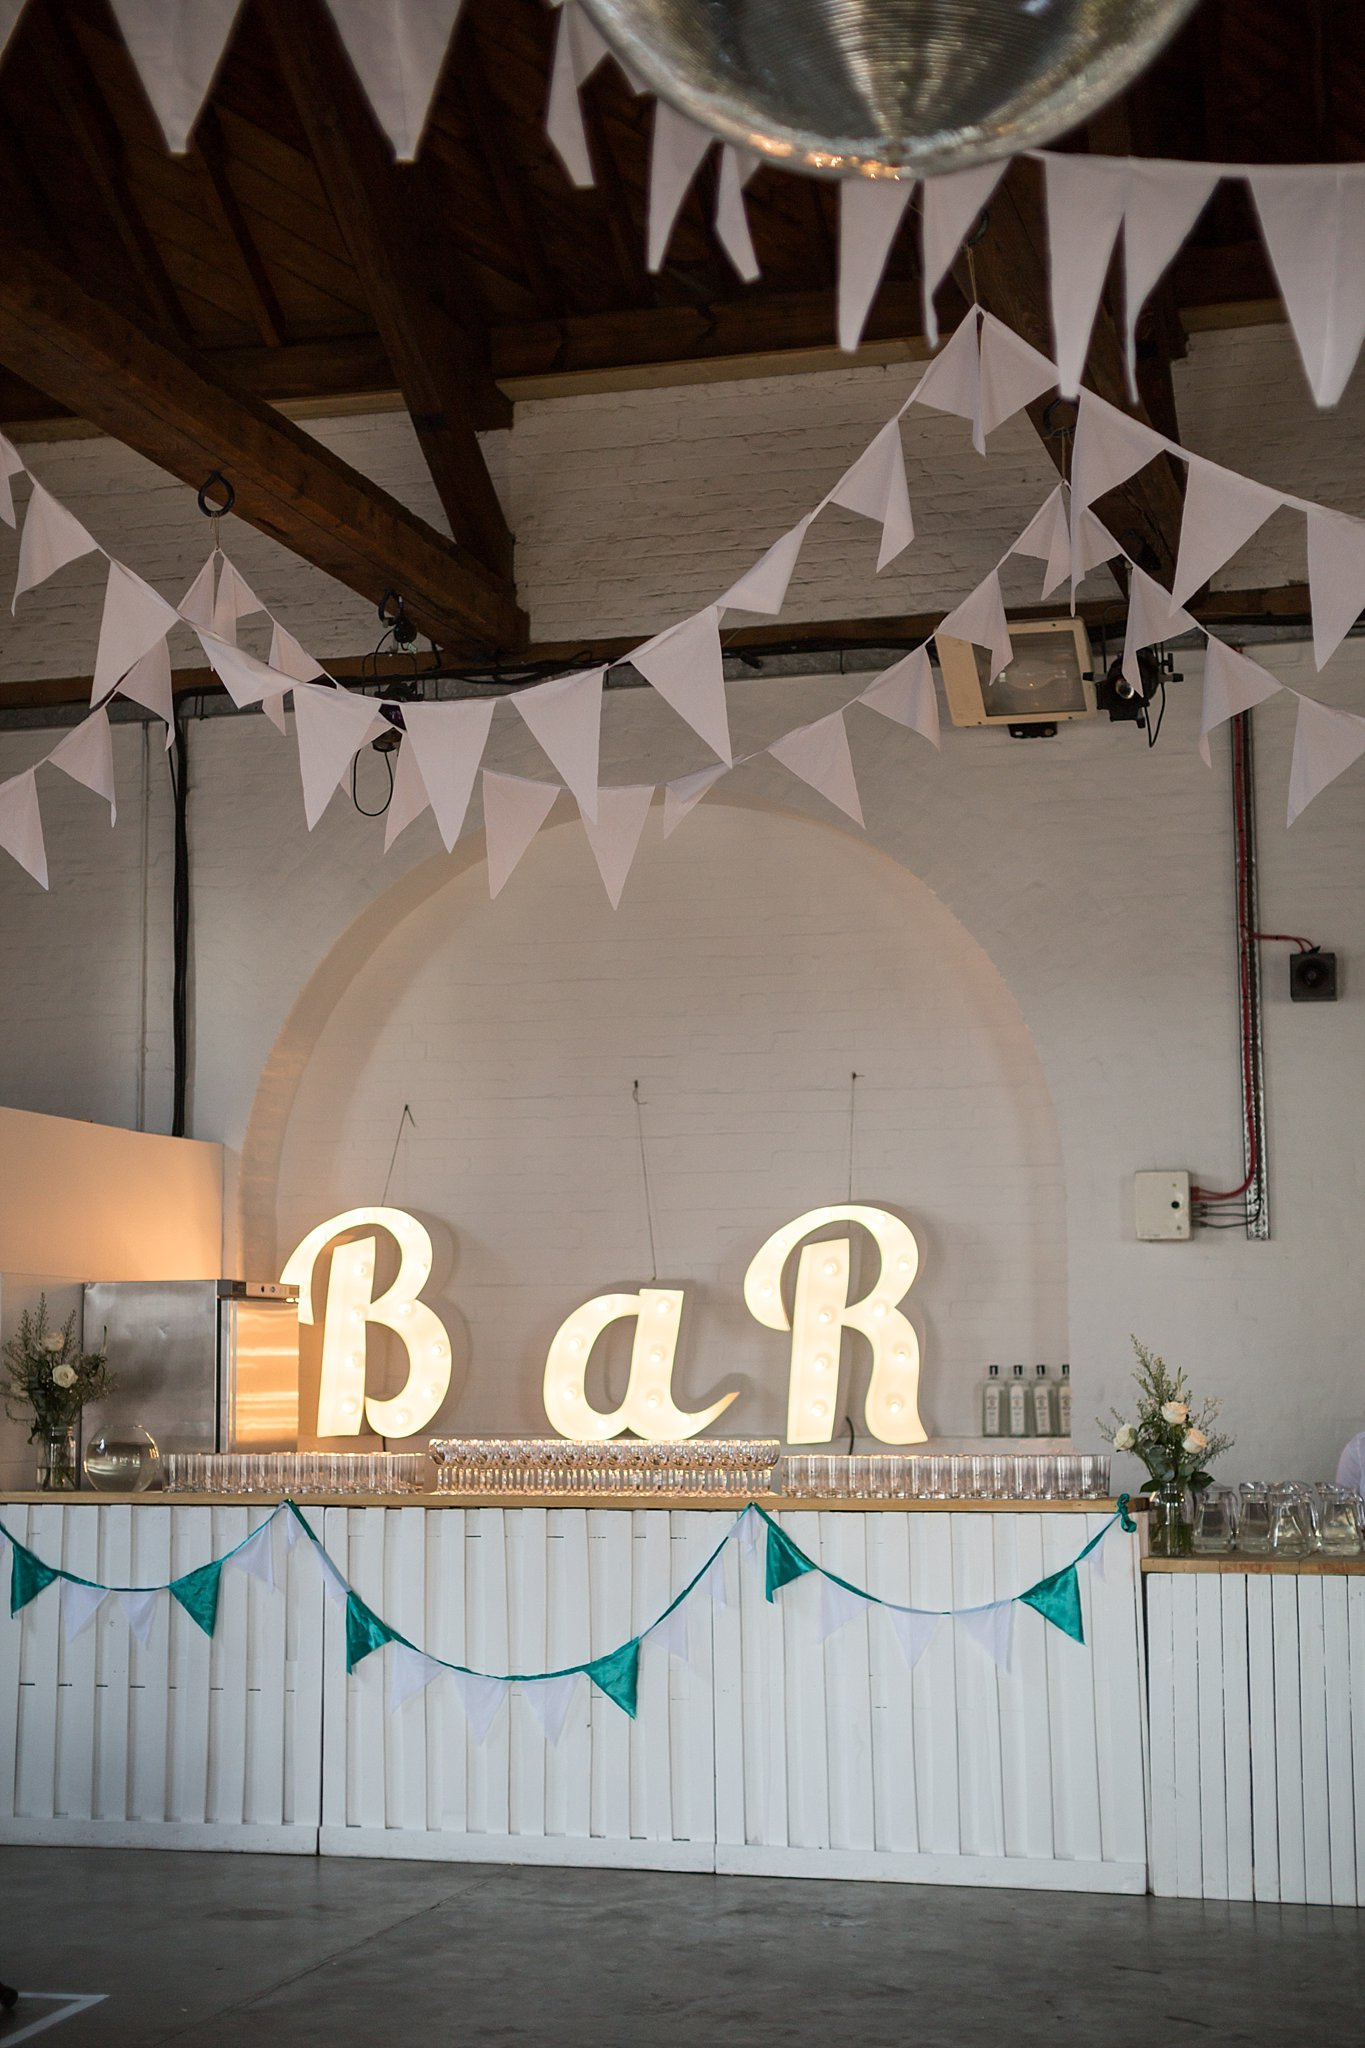 Trinity buoy wharf wedding with lace mon cheri bridal gown marquee lights bunting wedding decor junglespirit Images